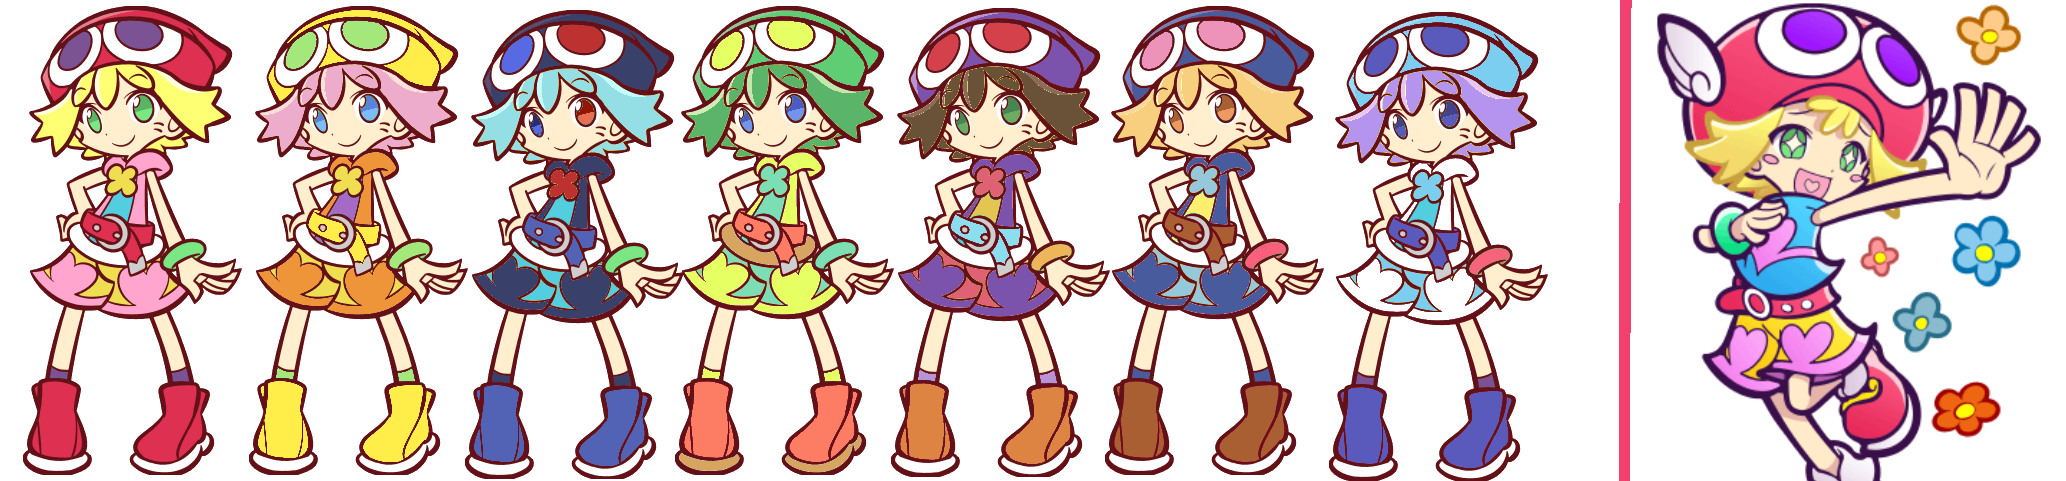 amitie alternate palettes2.png